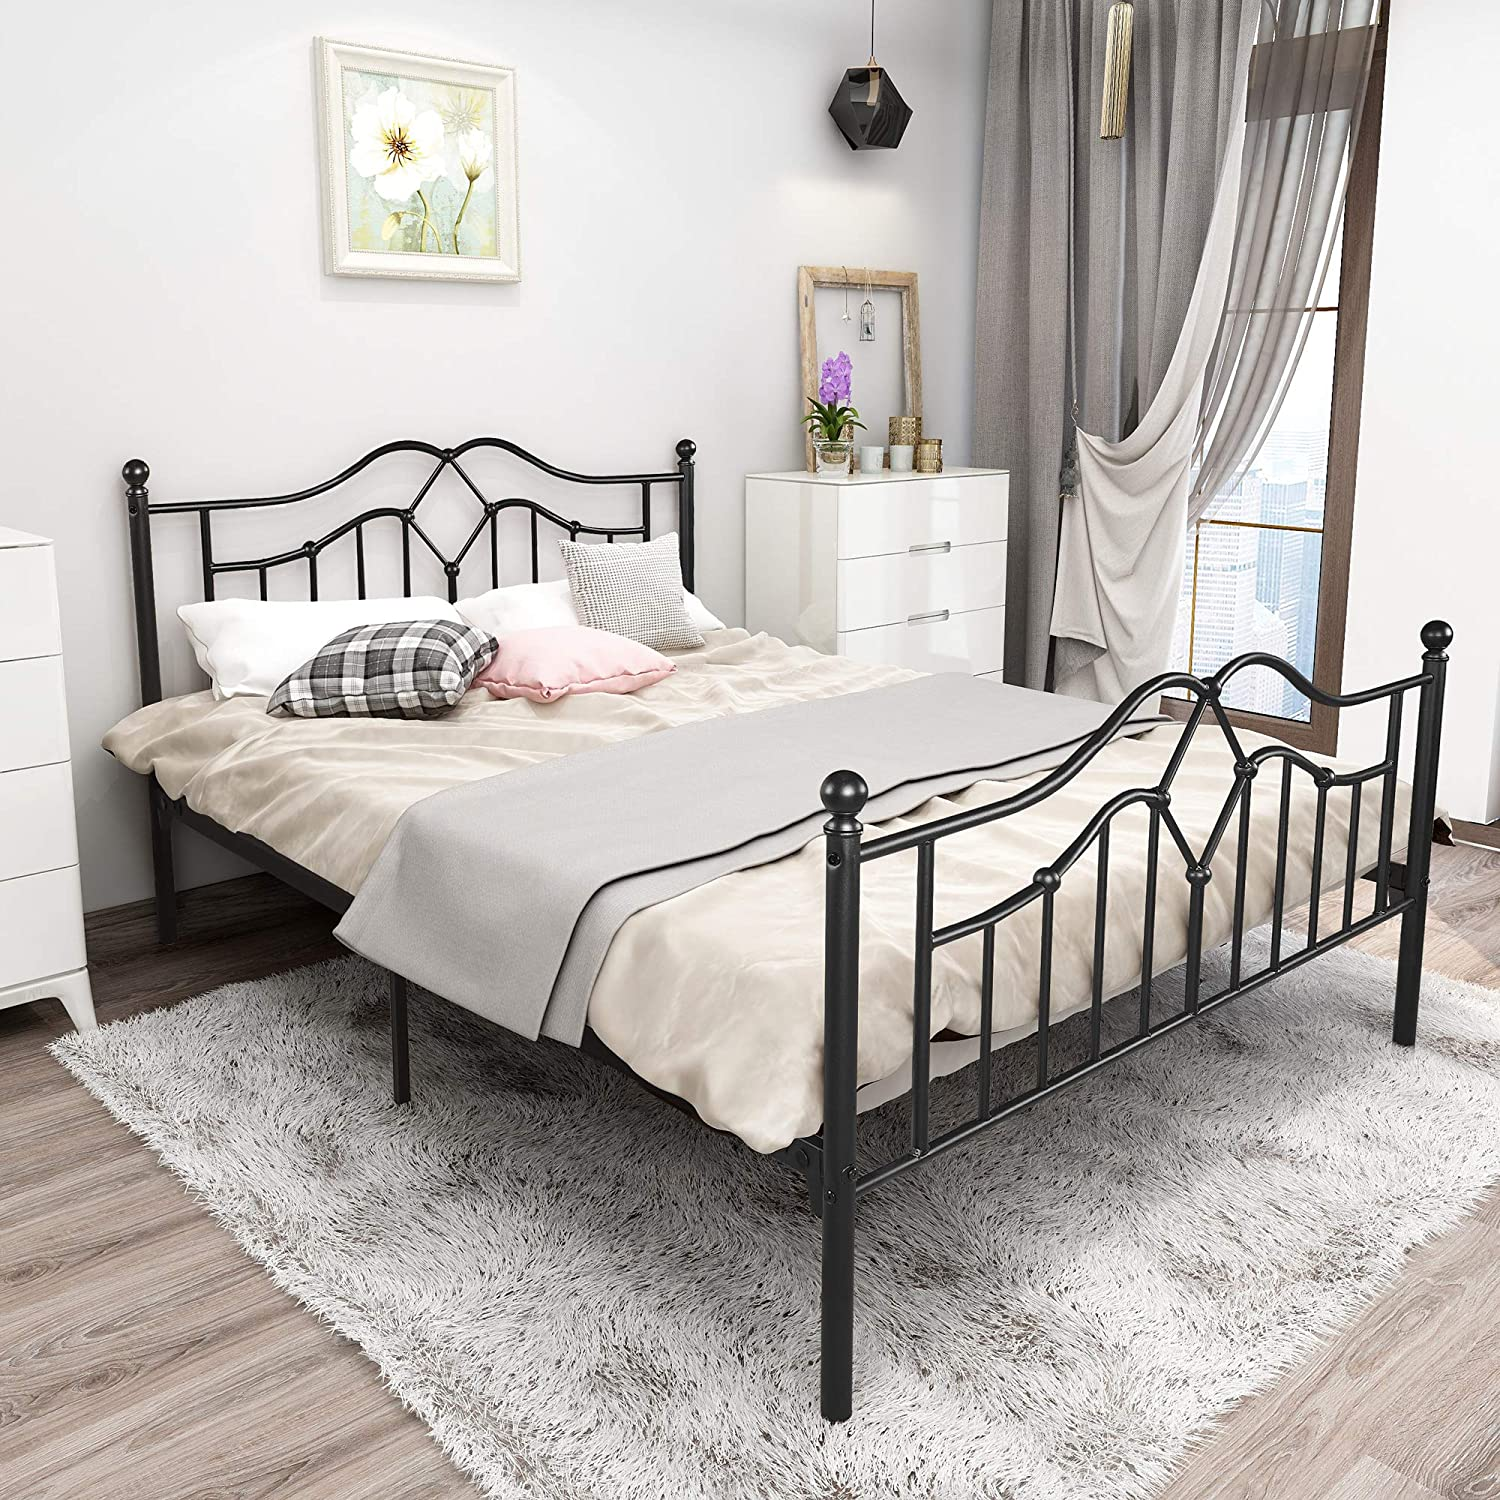 Vintage Queen Size Metal Bed Frame with Headboard and Footboard Basic Bed Frame No Box Spring Needed,Queen, Black